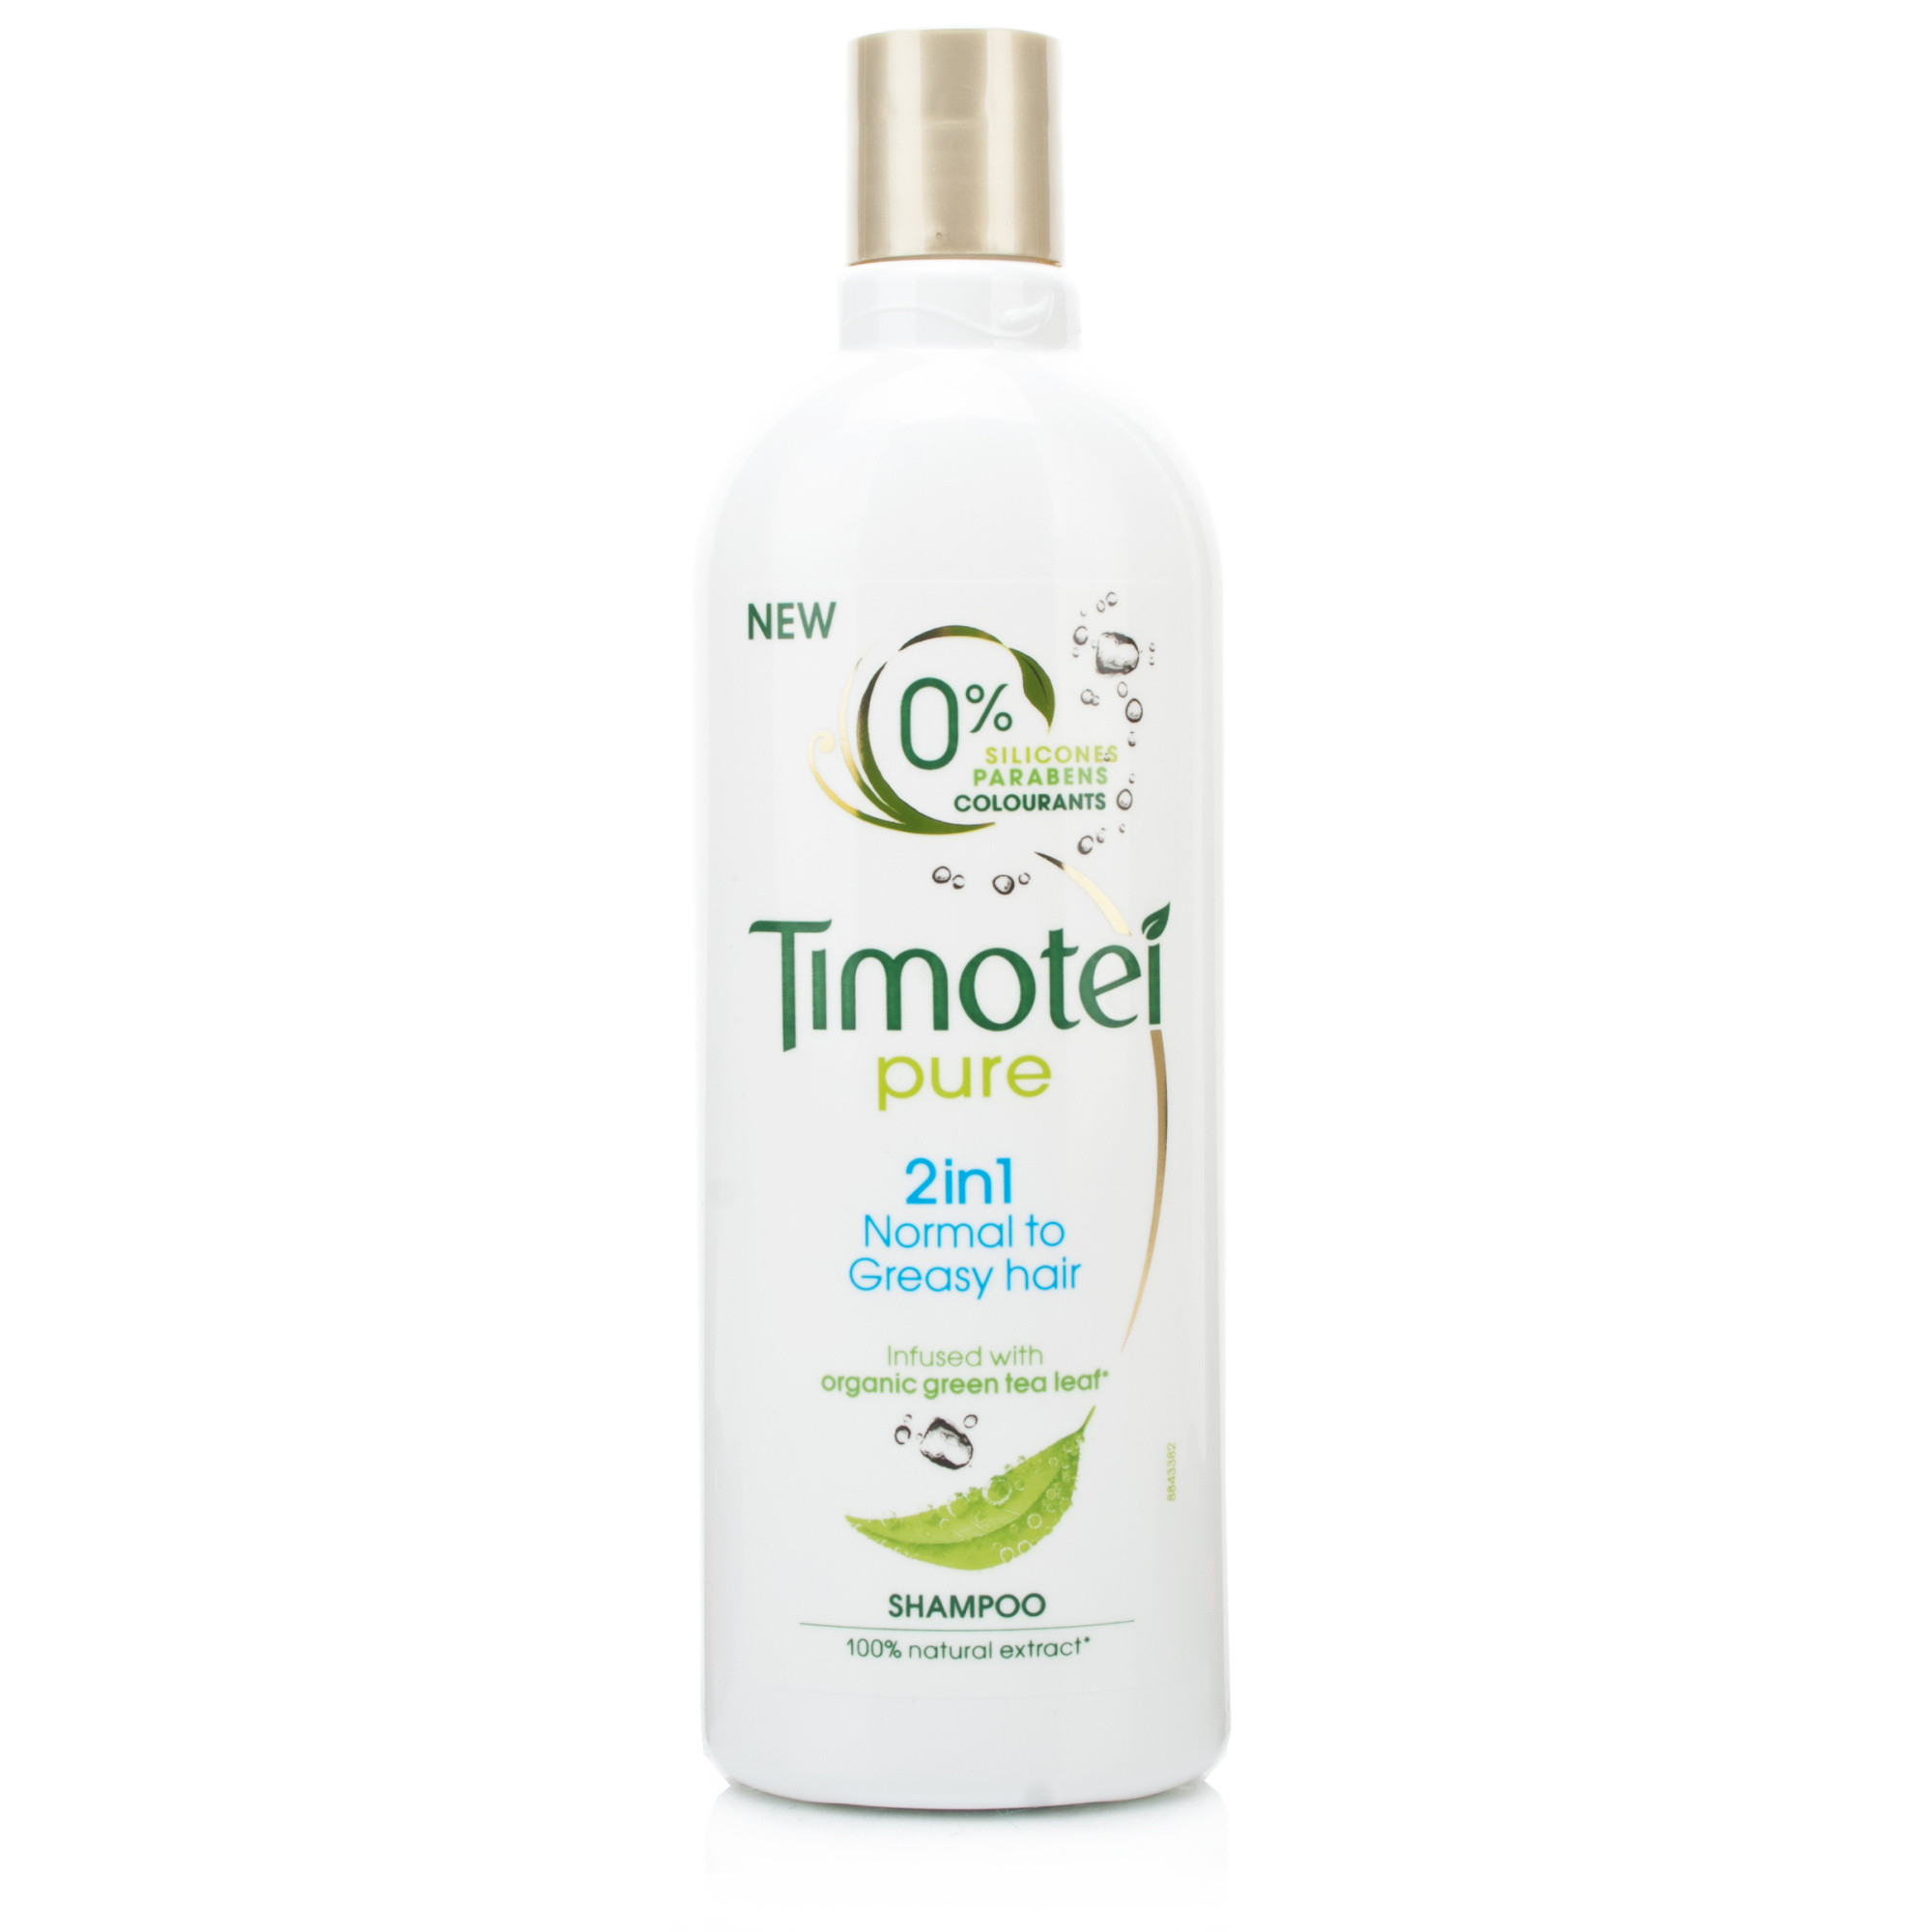 Buy Timotei Pure 2in1 Shampoo 250ml Online